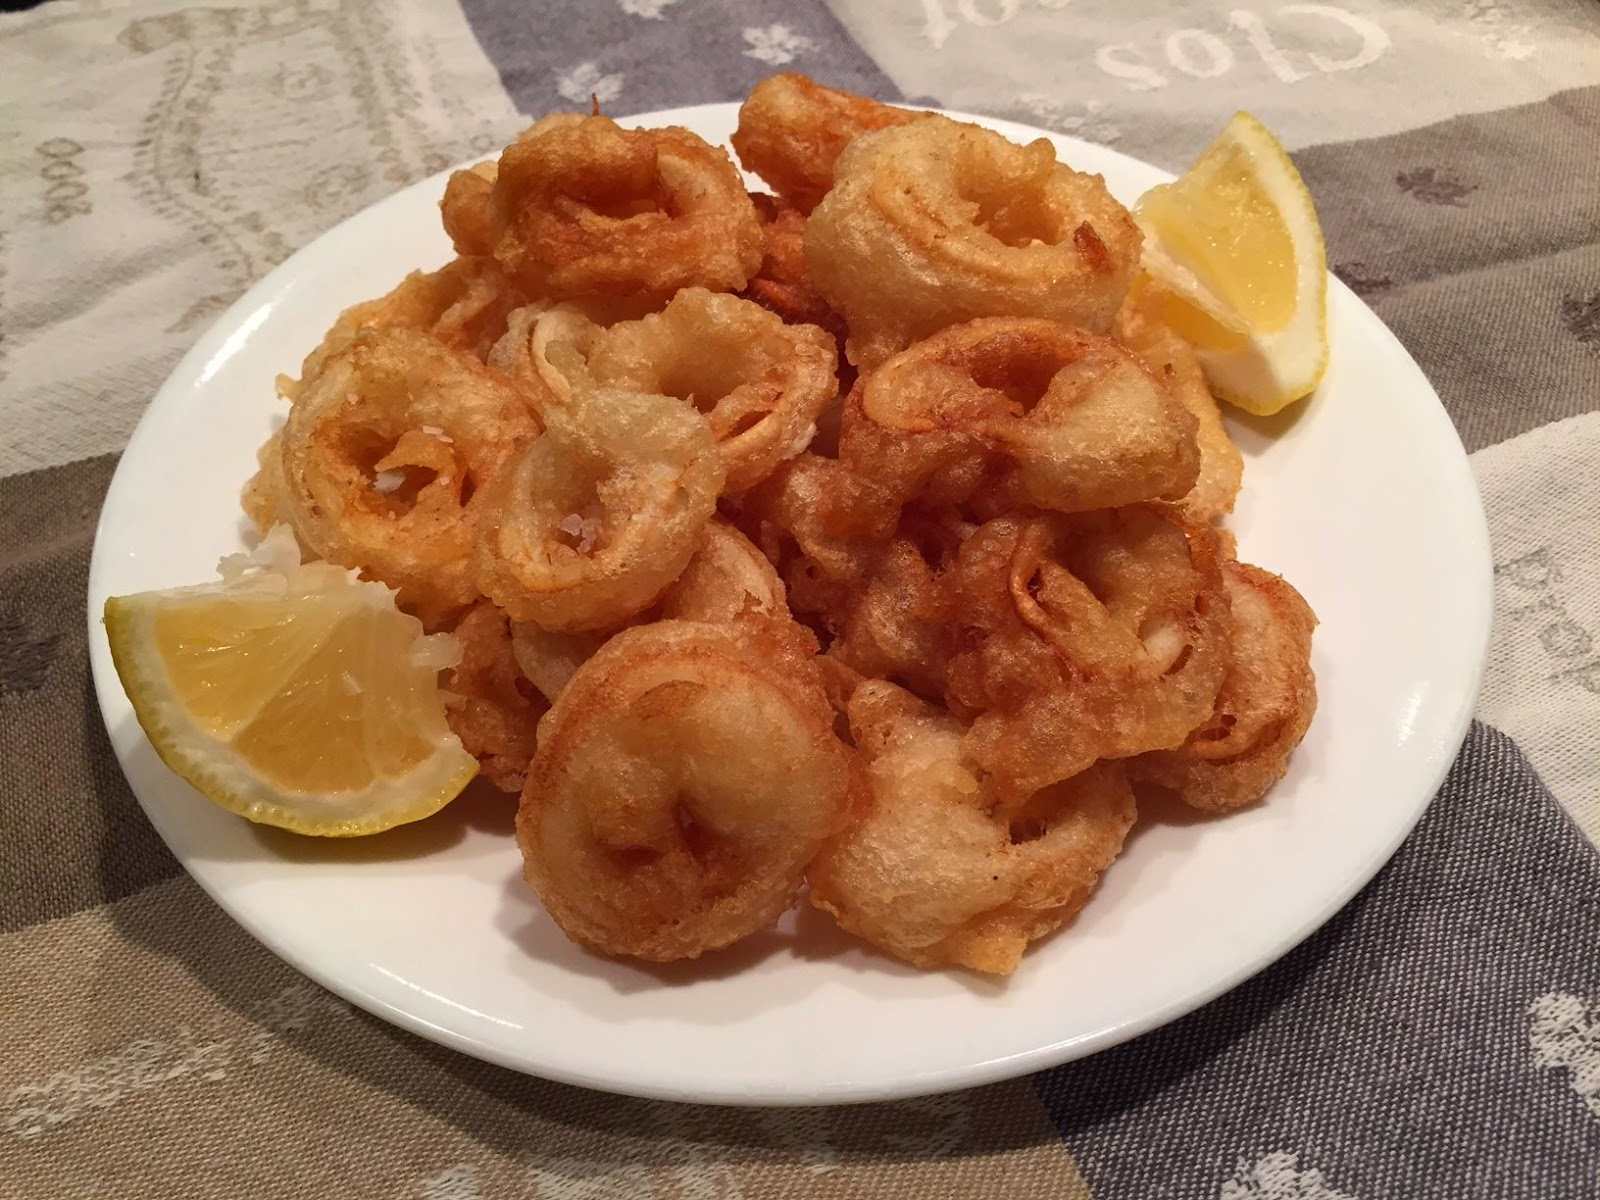 Fried Calamari (Squid)